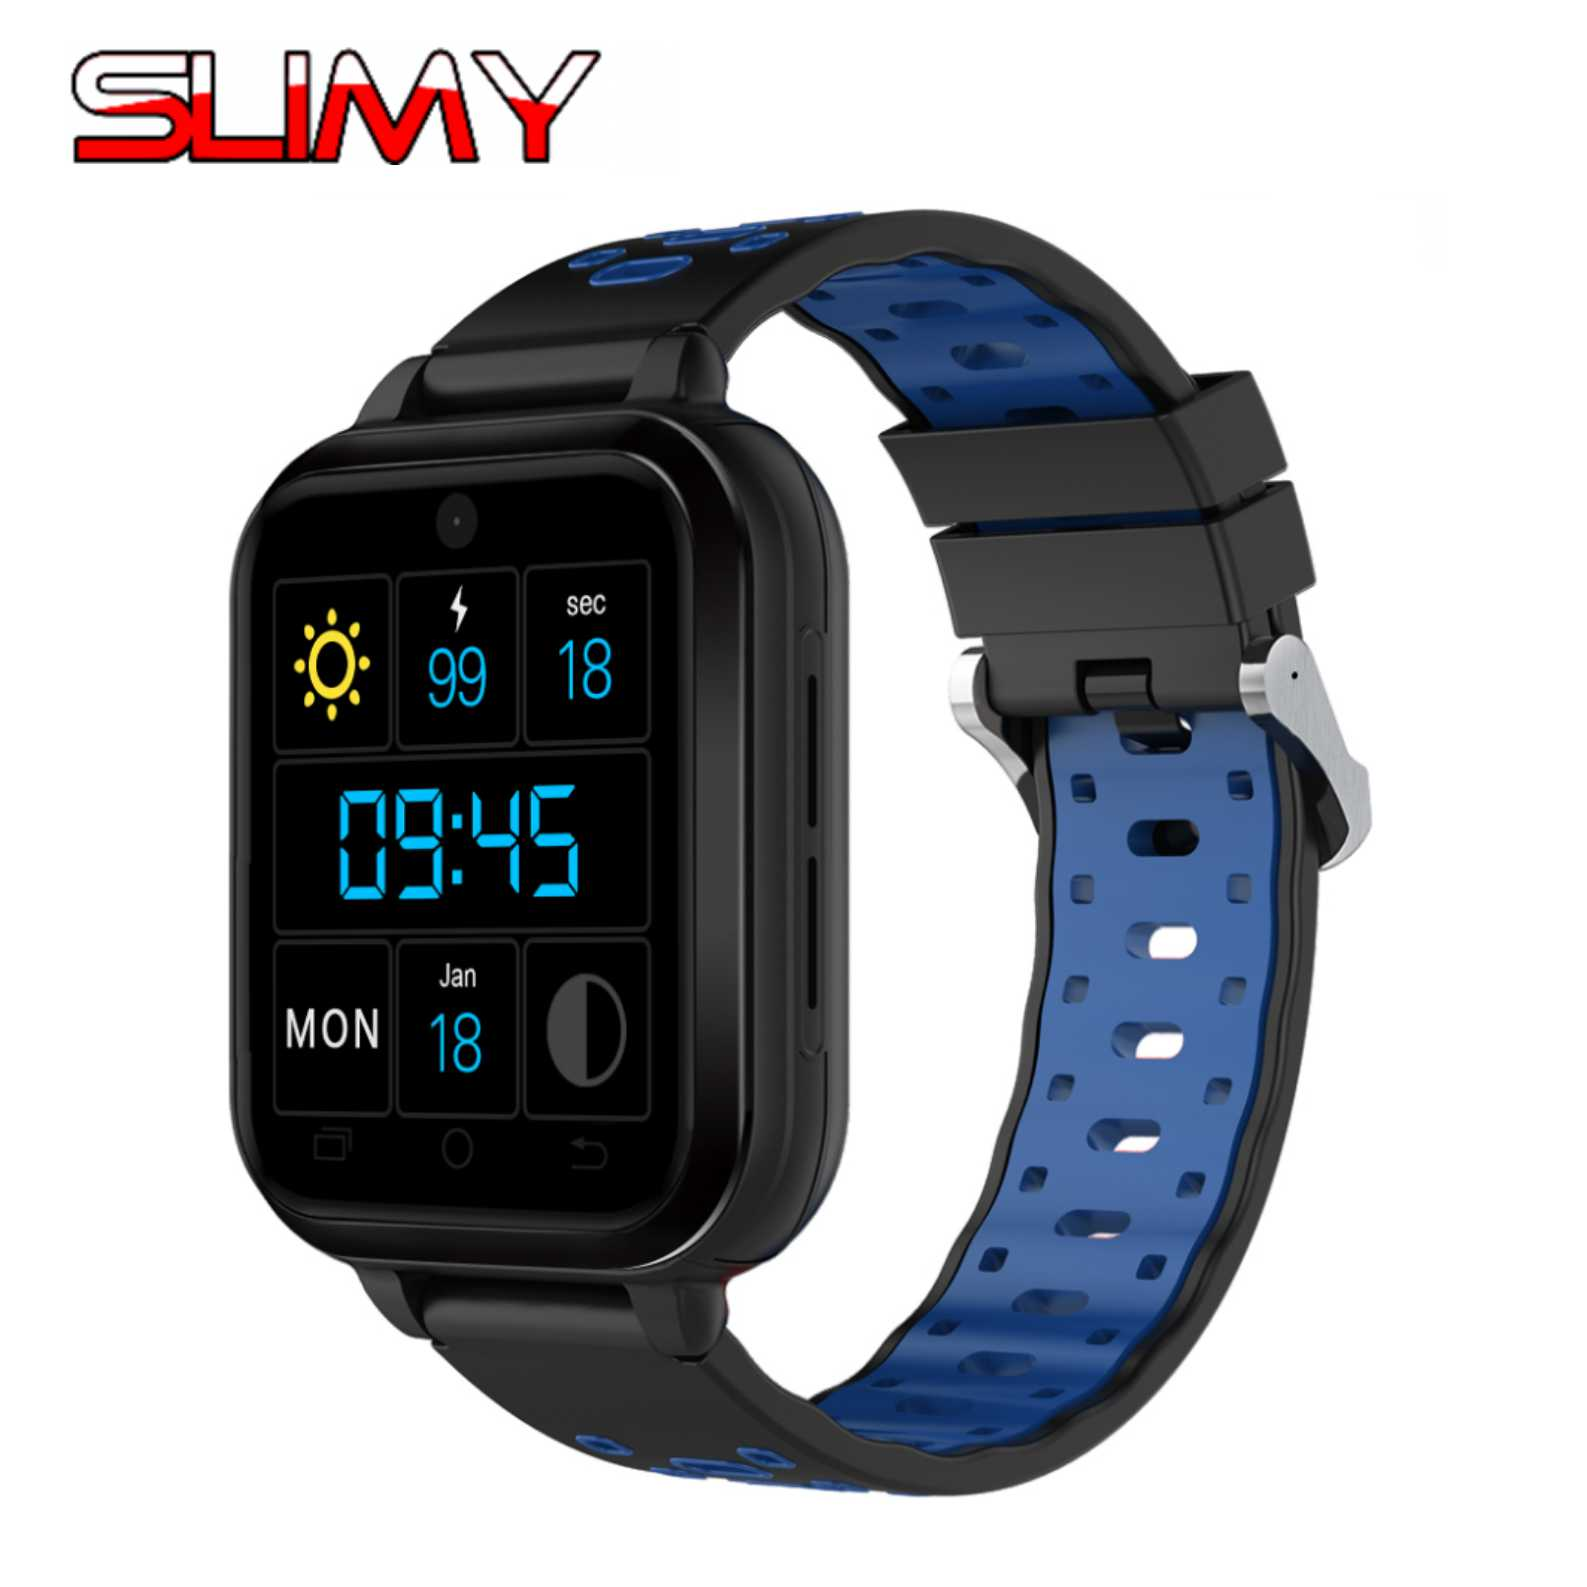 Slimy 4G LTE Wifi Smart Watch MTK6737 Quad Core 1G Ram 8G Rom Android 6.0 Heart Rate Monitor Camera SIM Card GPS for Women Men crcular shape no 1 d5 android 4 4 bluetooth gps smart watch with heart rate monitor google play gps 4g rom 512m ram smartwatch